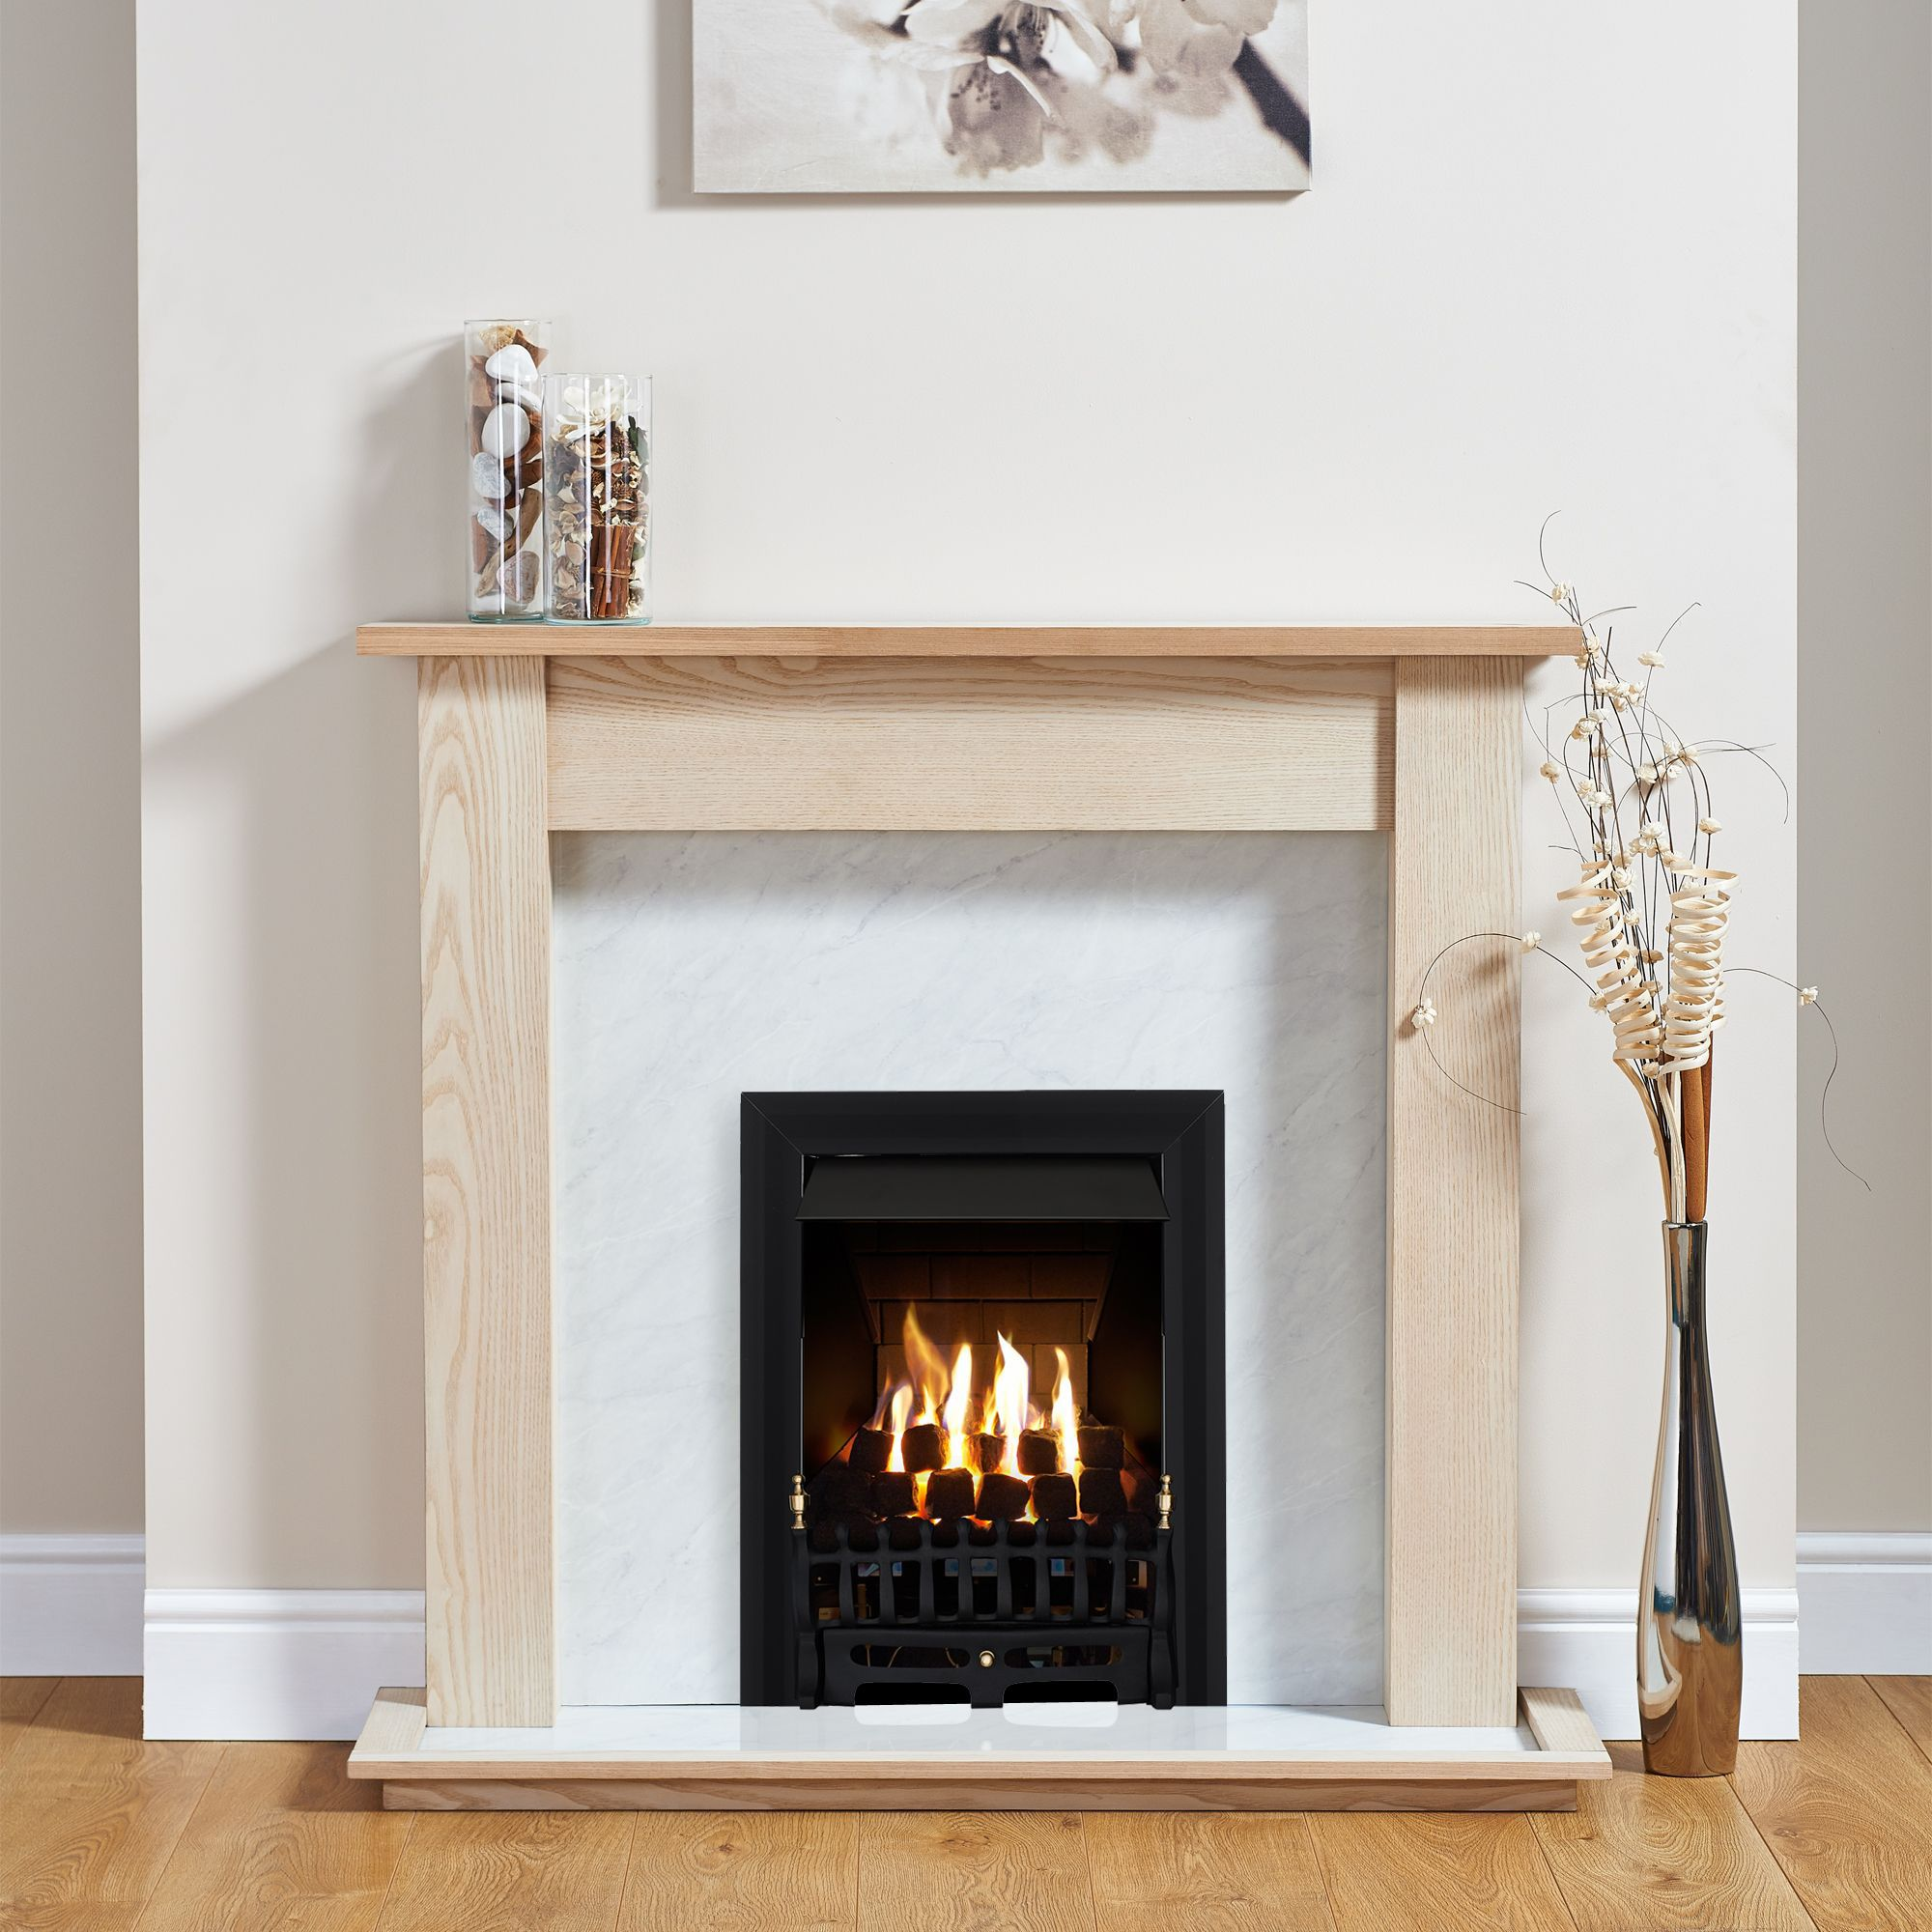 Focal Point Blenheim Black Inset Gas Fire Suite